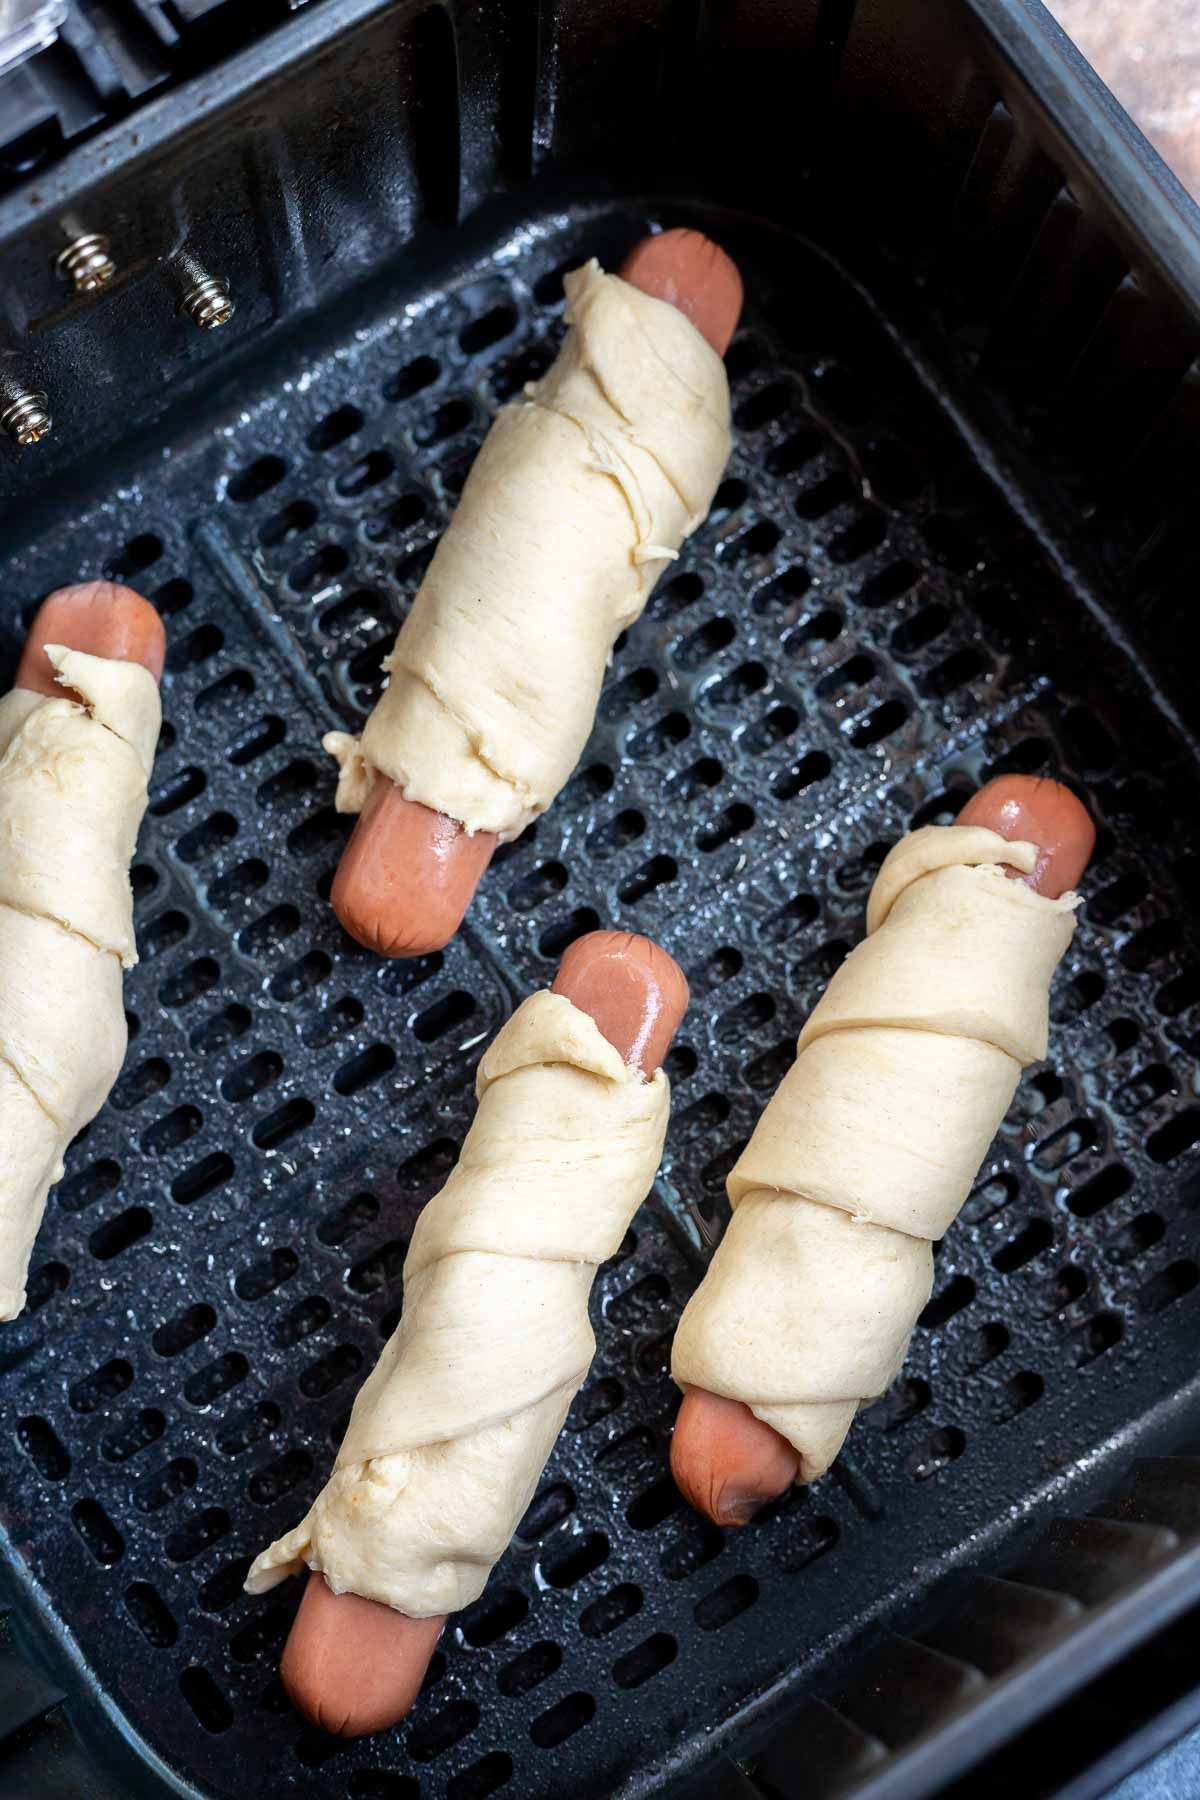 uncooked crescent dogs in air fryer basket